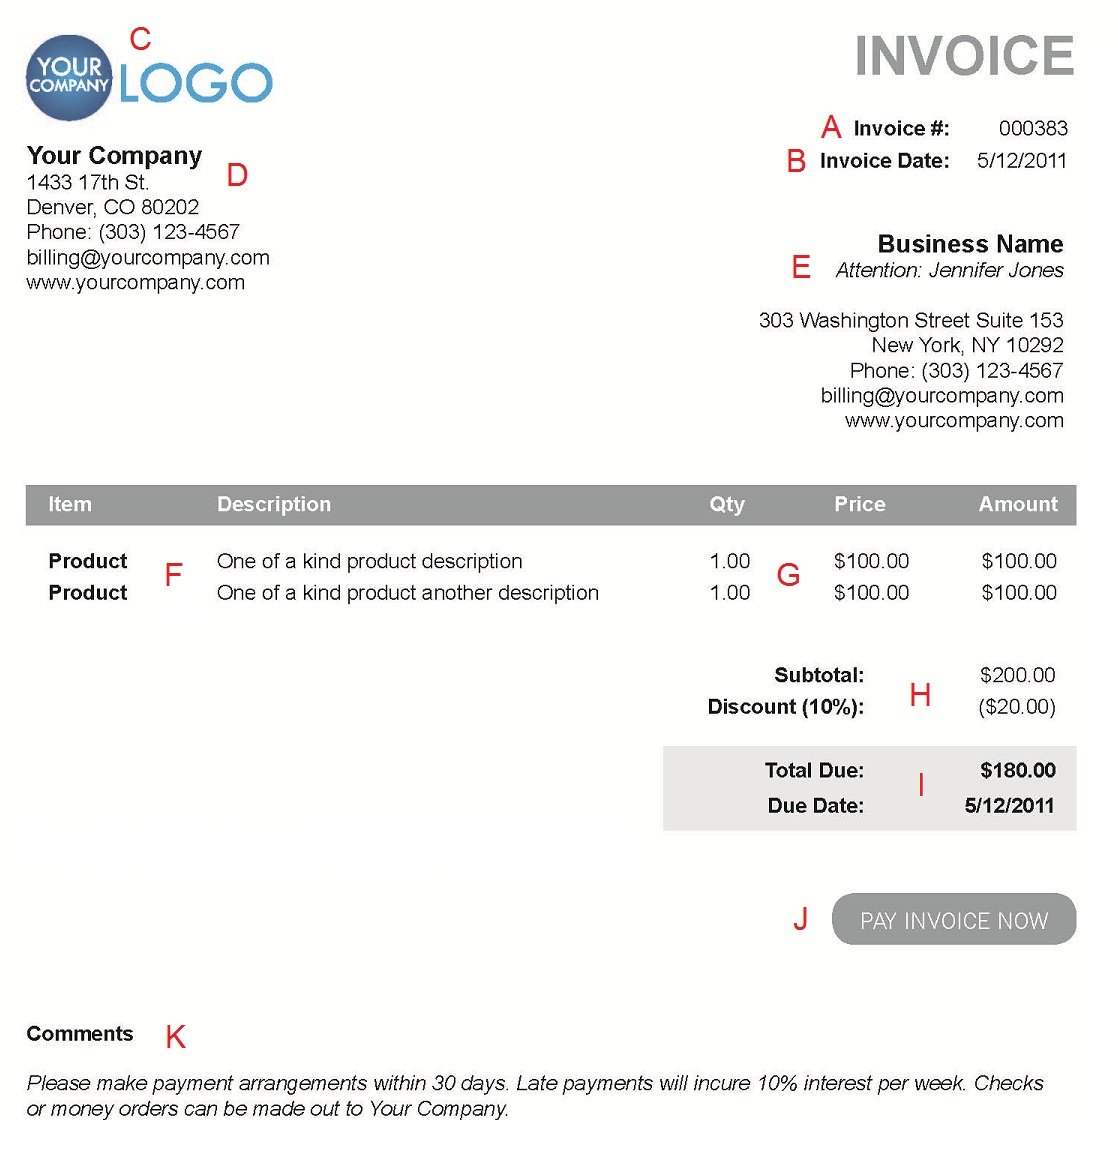 Sandiegolocksmithsus  Gorgeous The  Different Sections Of An Electronic Payment Invoice With Marvelous A  With Delightful Get Dealer Invoice Price Also Invoicing Process Flow Chart In Addition How Do I Send An Invoice And Opentext Vendor Invoice Management As Well As Invoice Value Additionally Free Templates For Invoices Printable From Paysimplecom With Sandiegolocksmithsus  Marvelous The  Different Sections Of An Electronic Payment Invoice With Delightful A  And Gorgeous Get Dealer Invoice Price Also Invoicing Process Flow Chart In Addition How Do I Send An Invoice From Paysimplecom